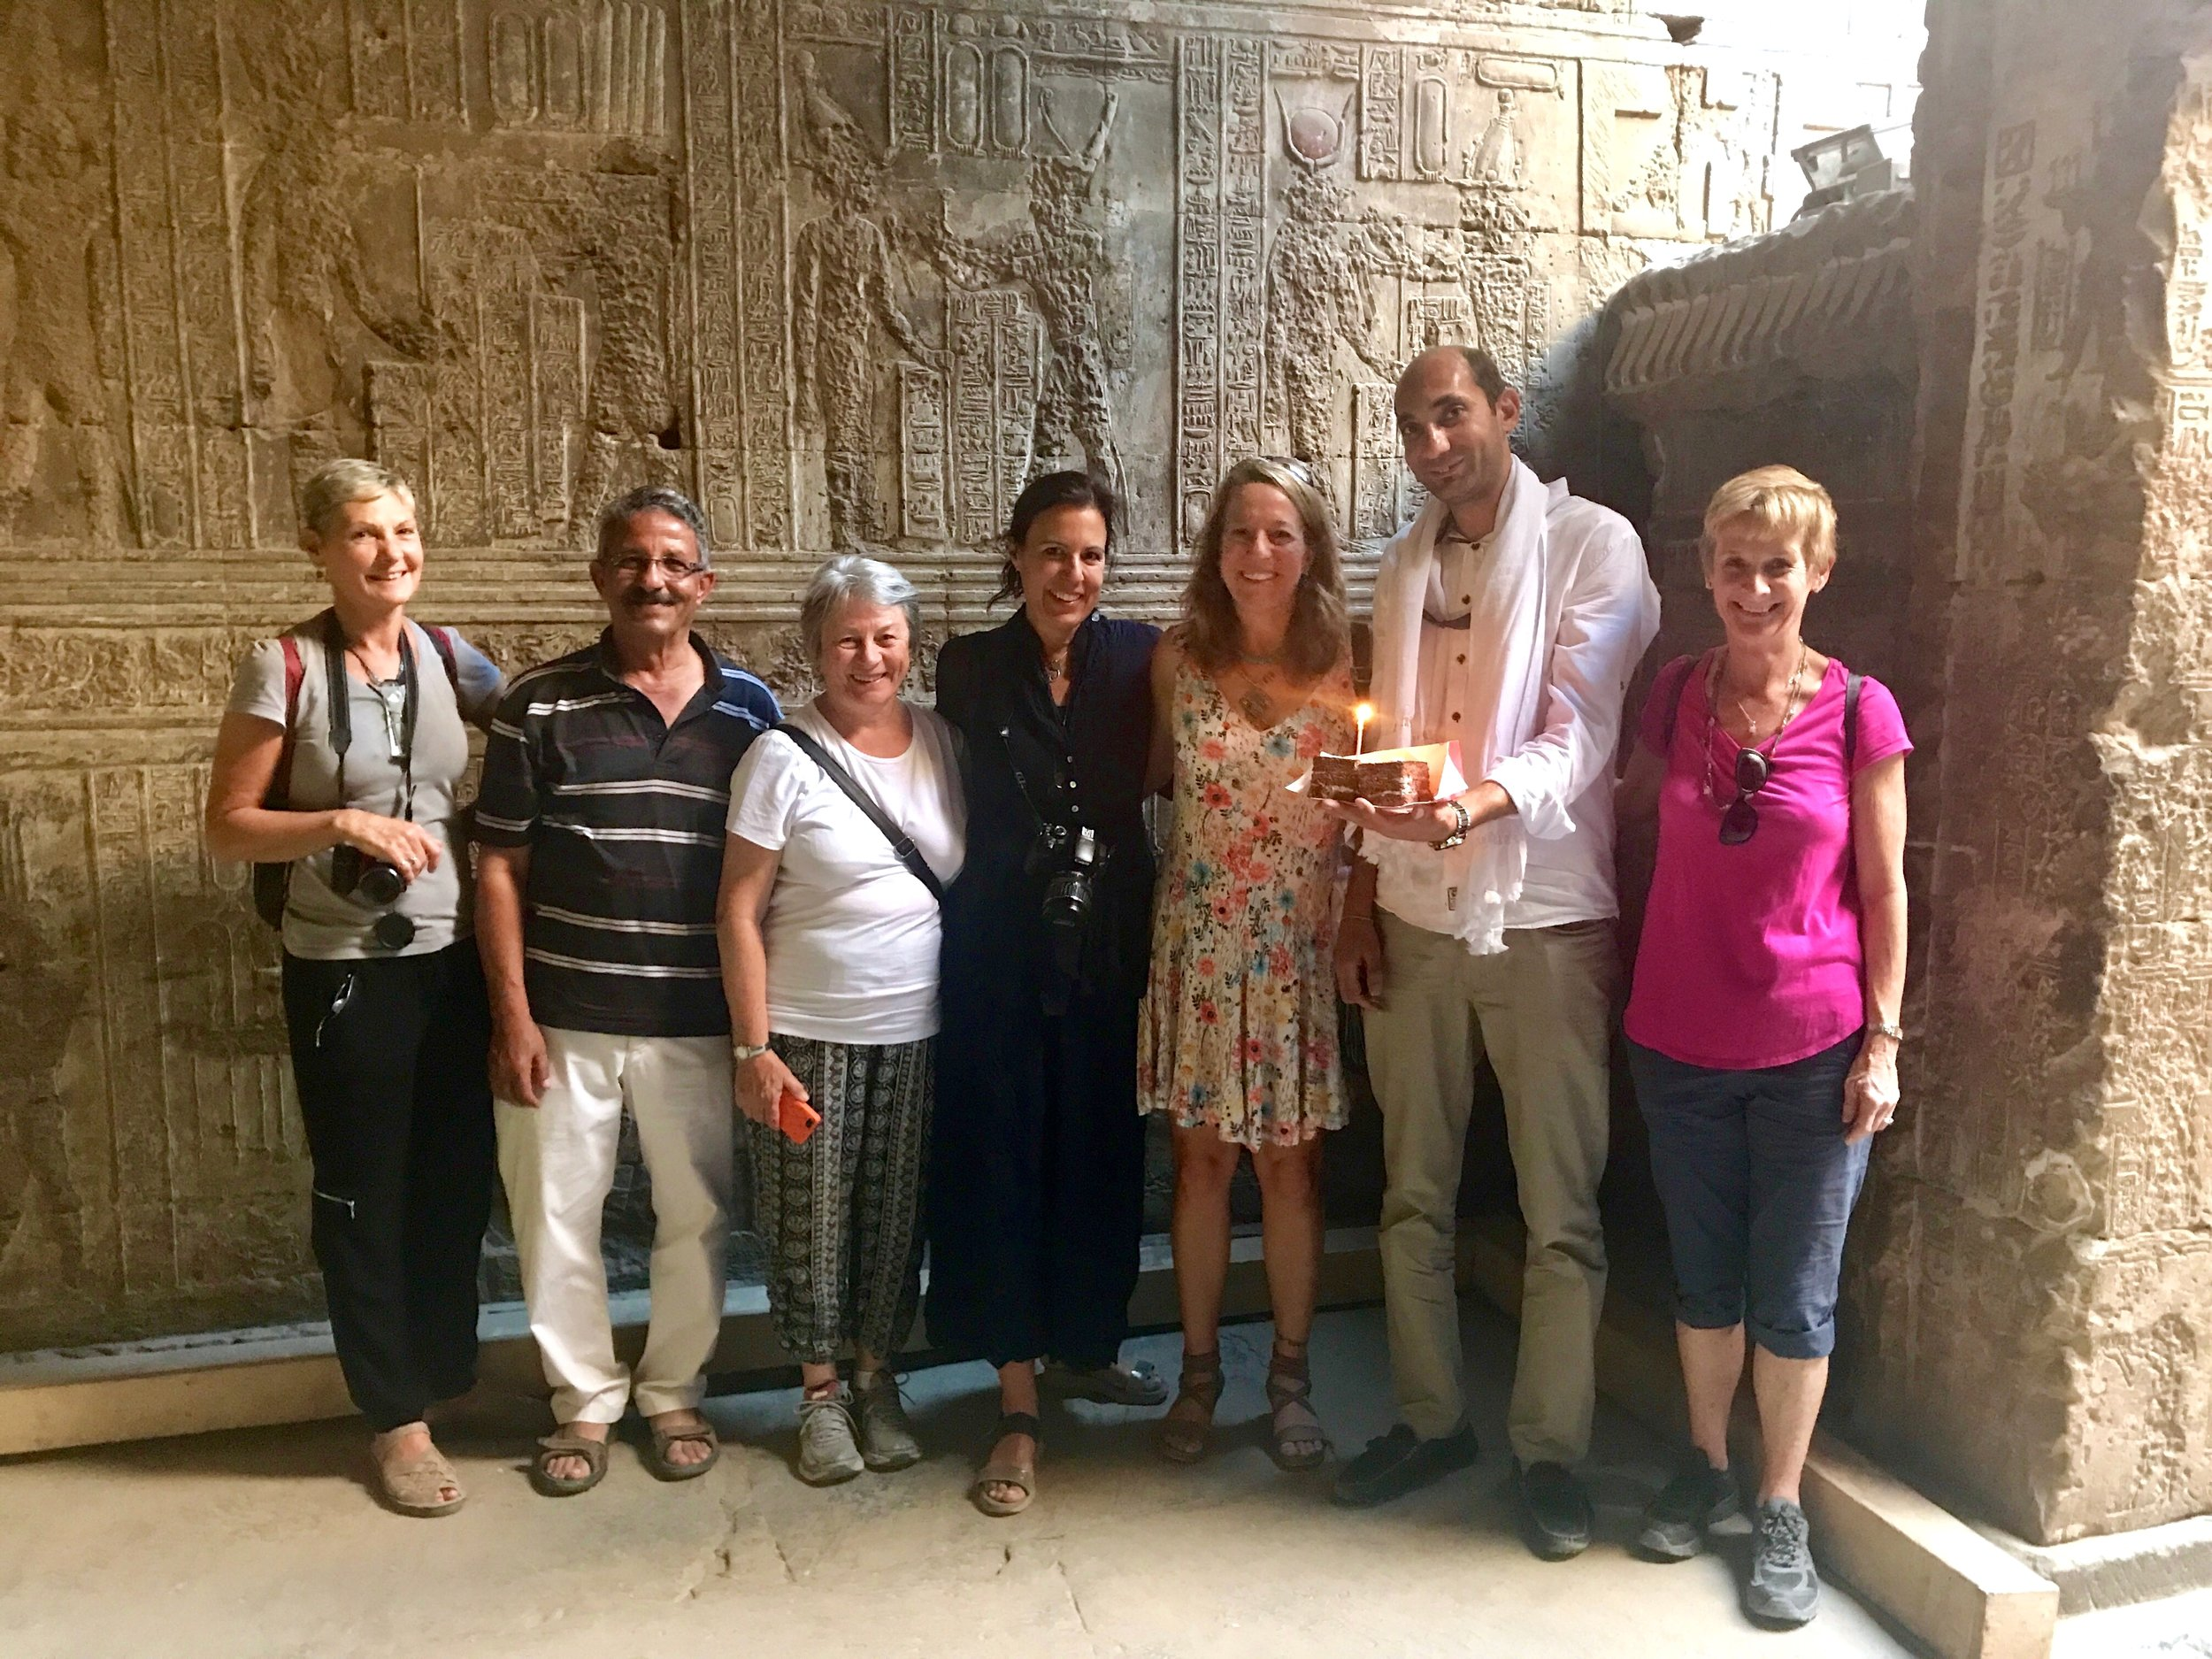 Oct 2017 Katherine's 50th birthday party at Nut Chapel in Temple of Hathor at Dendera